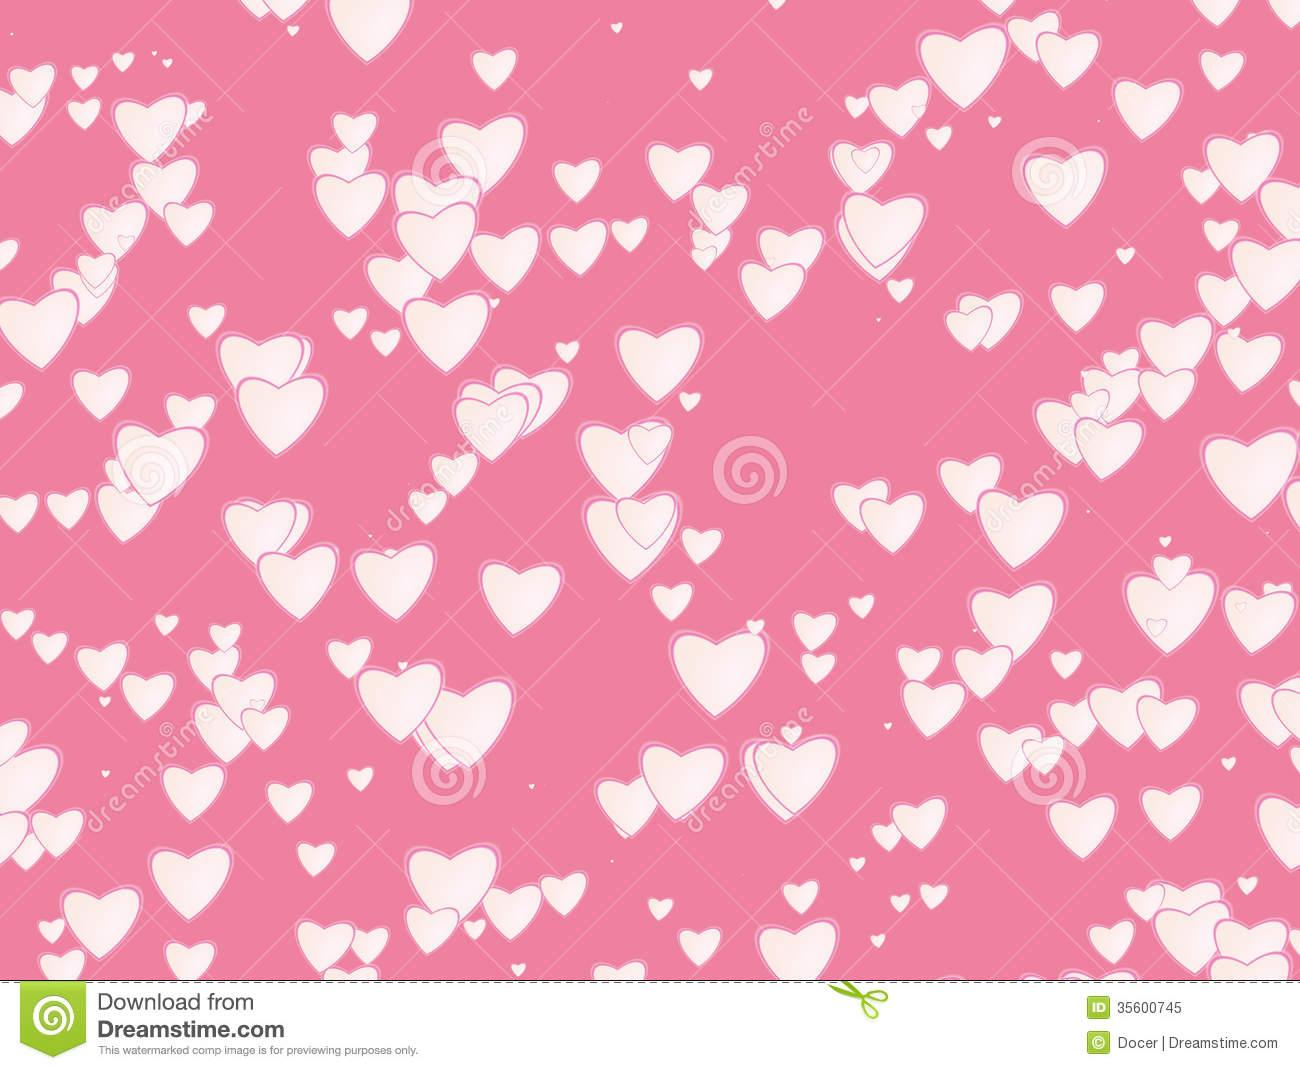 Many White Hearts Background Of Valentine's Day. Love